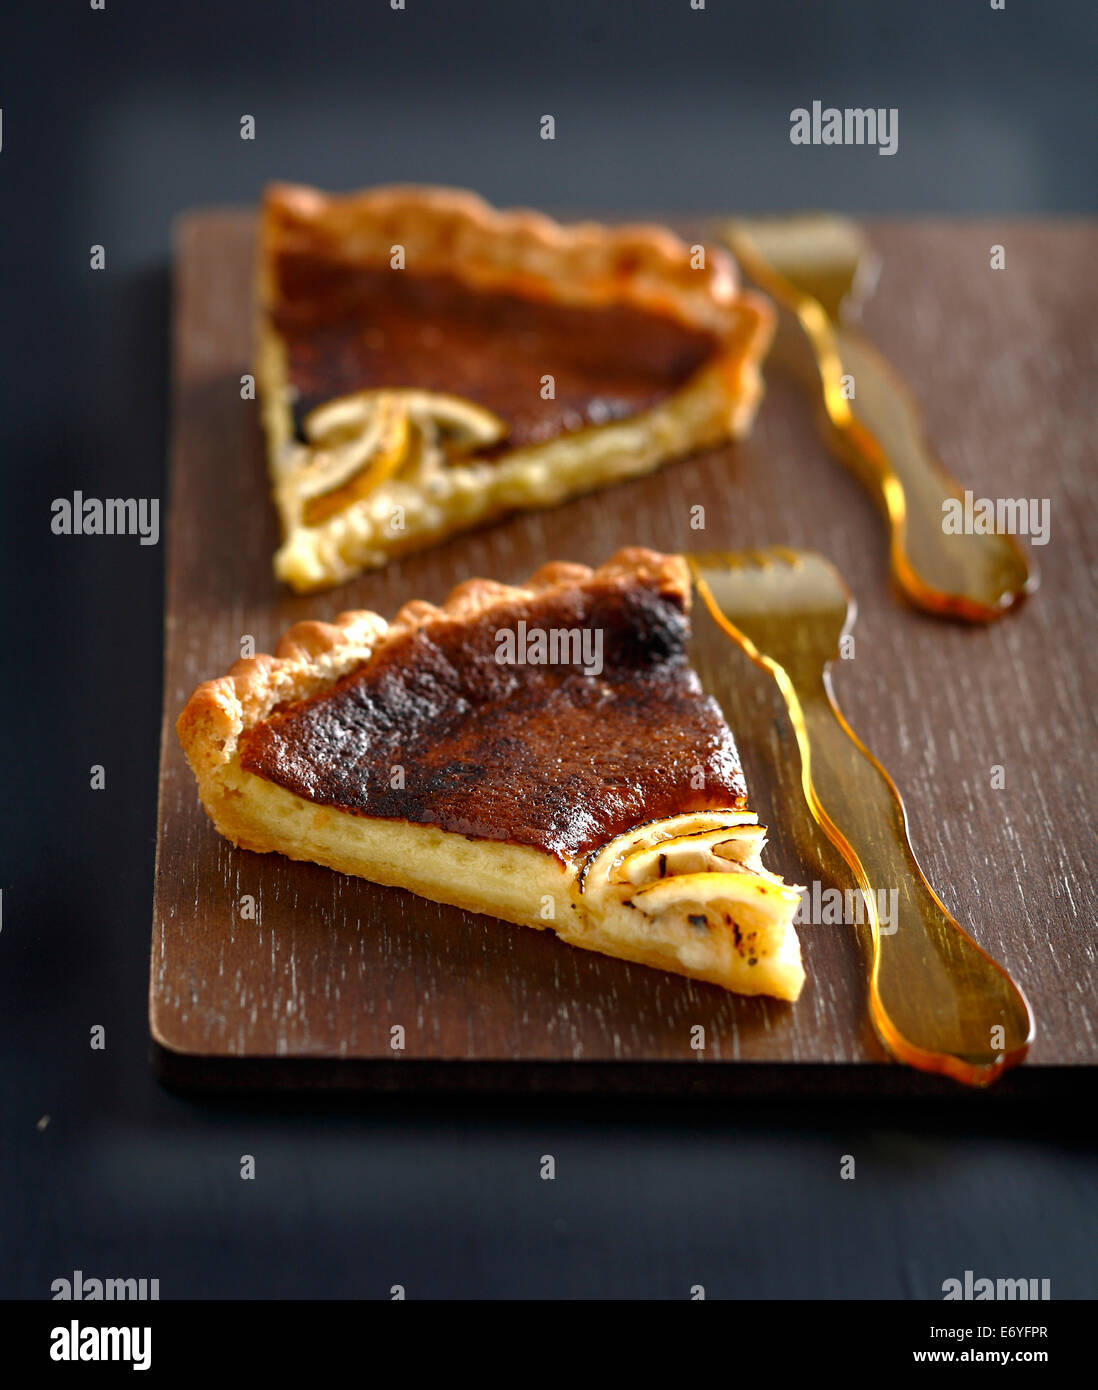 Slices of lemon tart - Stock Image